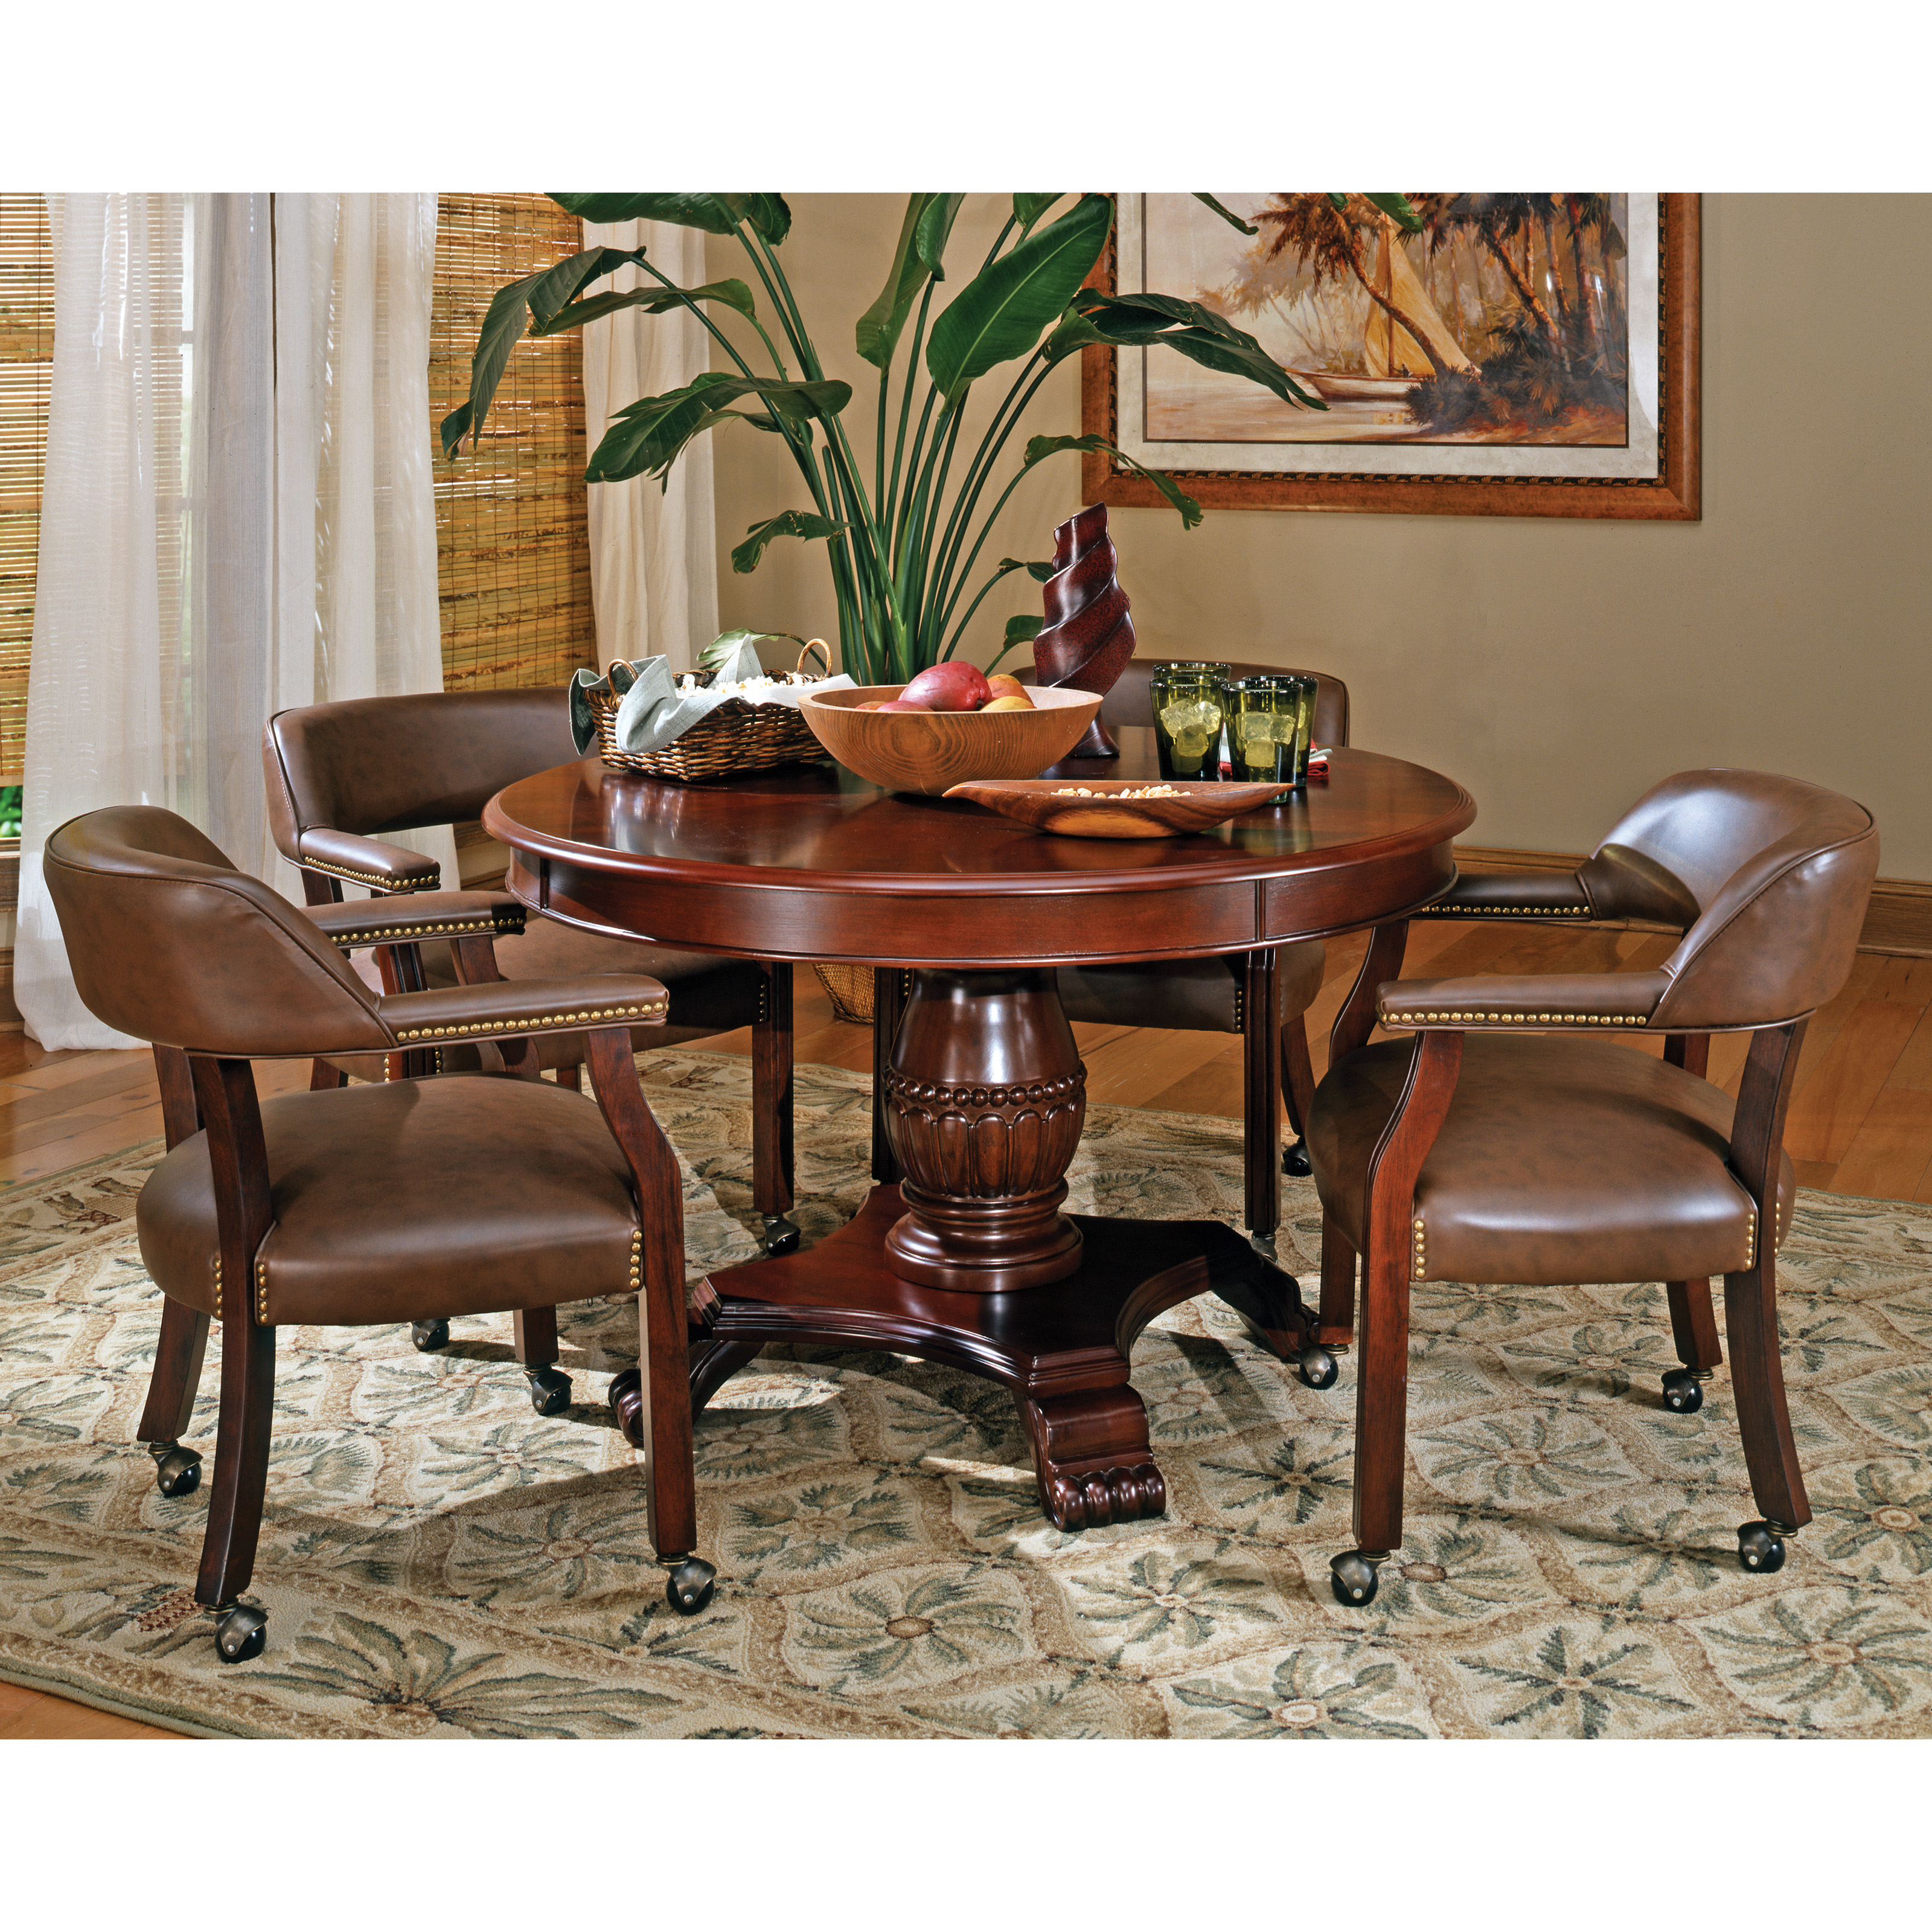 Steve Silver Tournament Dining Game Table Cherry